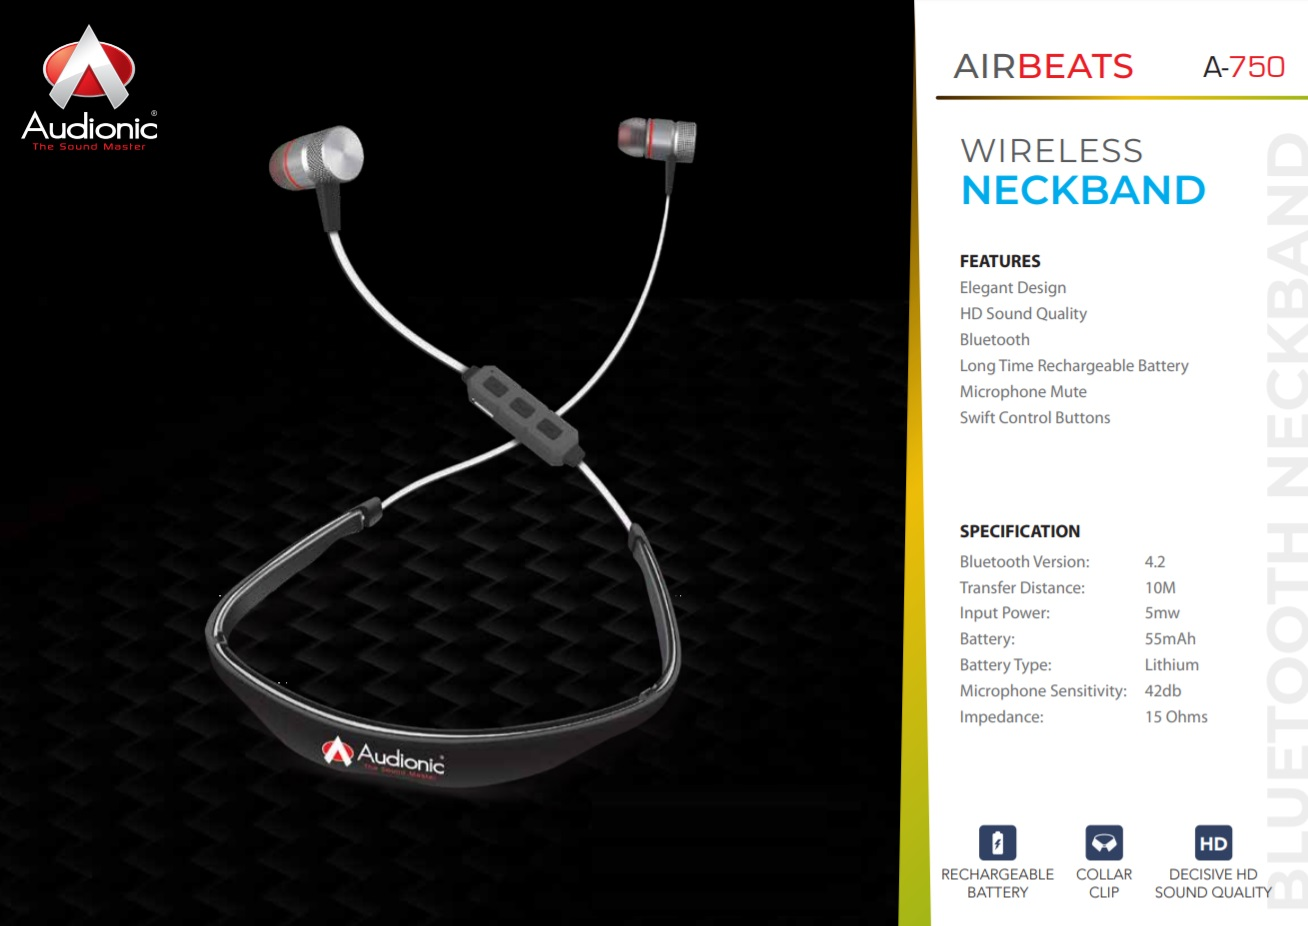 Airbeats A-750 Wireless Neckband by Audionic Pakistan